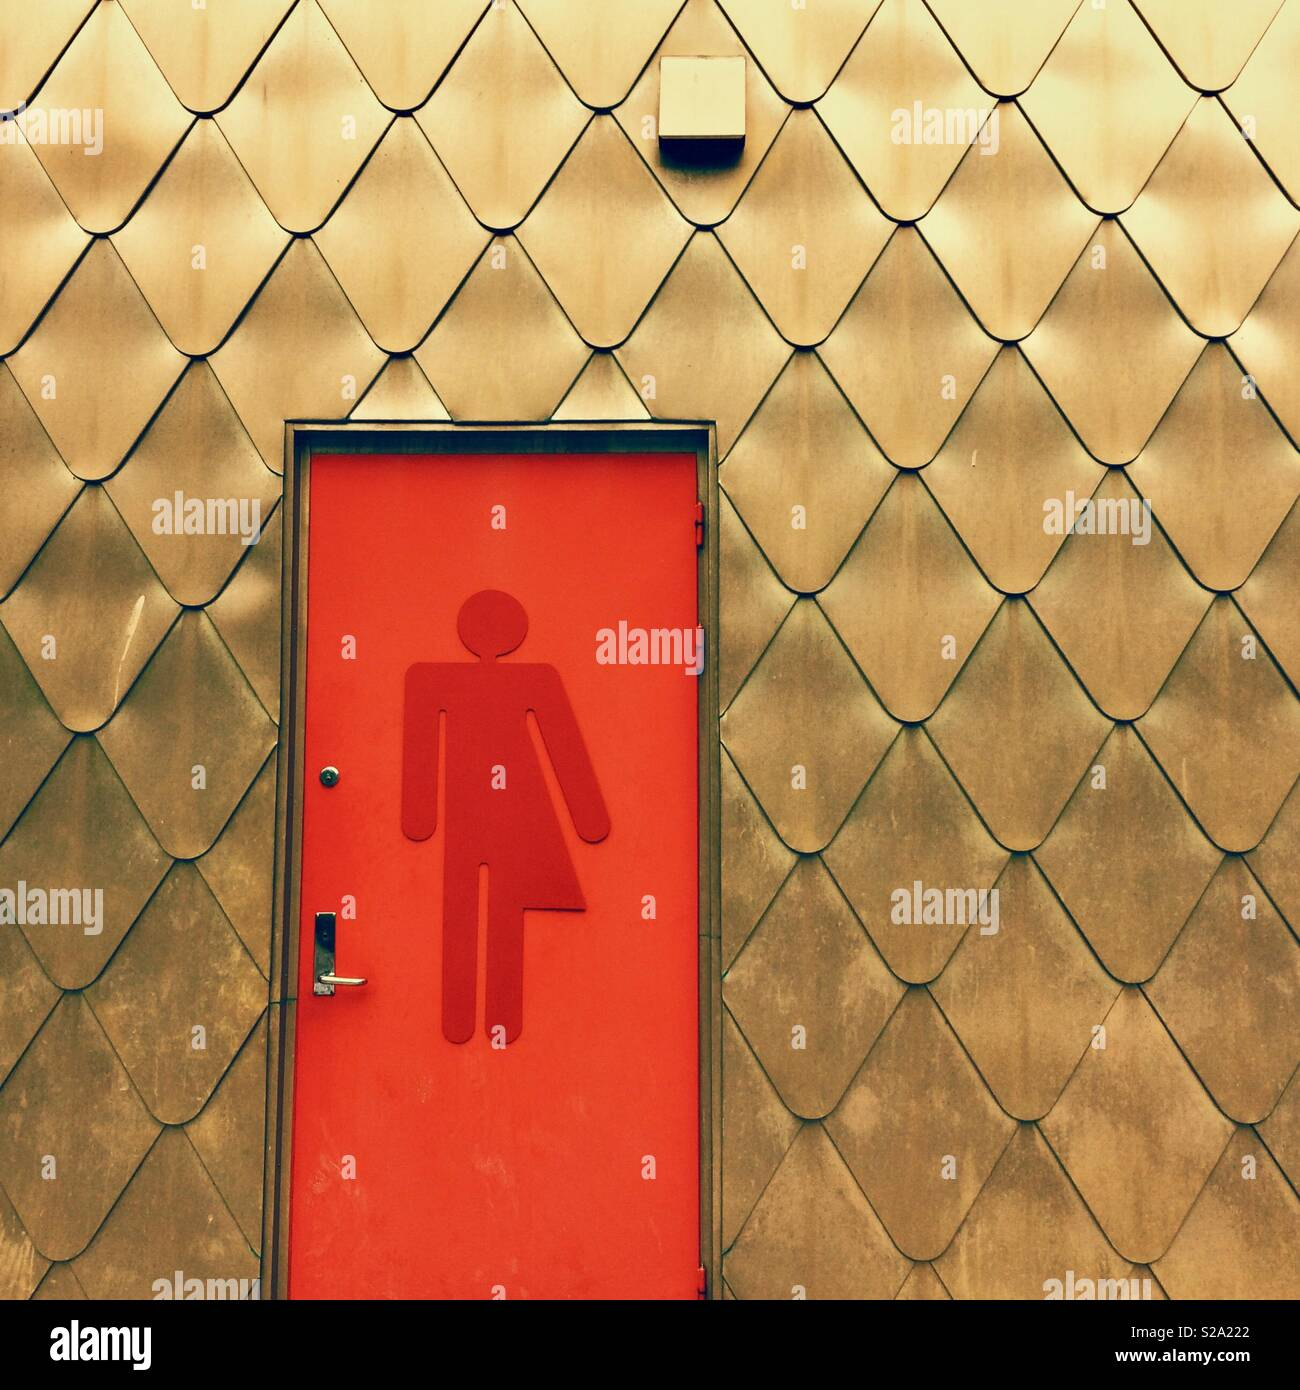 A red unisex toilet door on a gold building - Stock Image